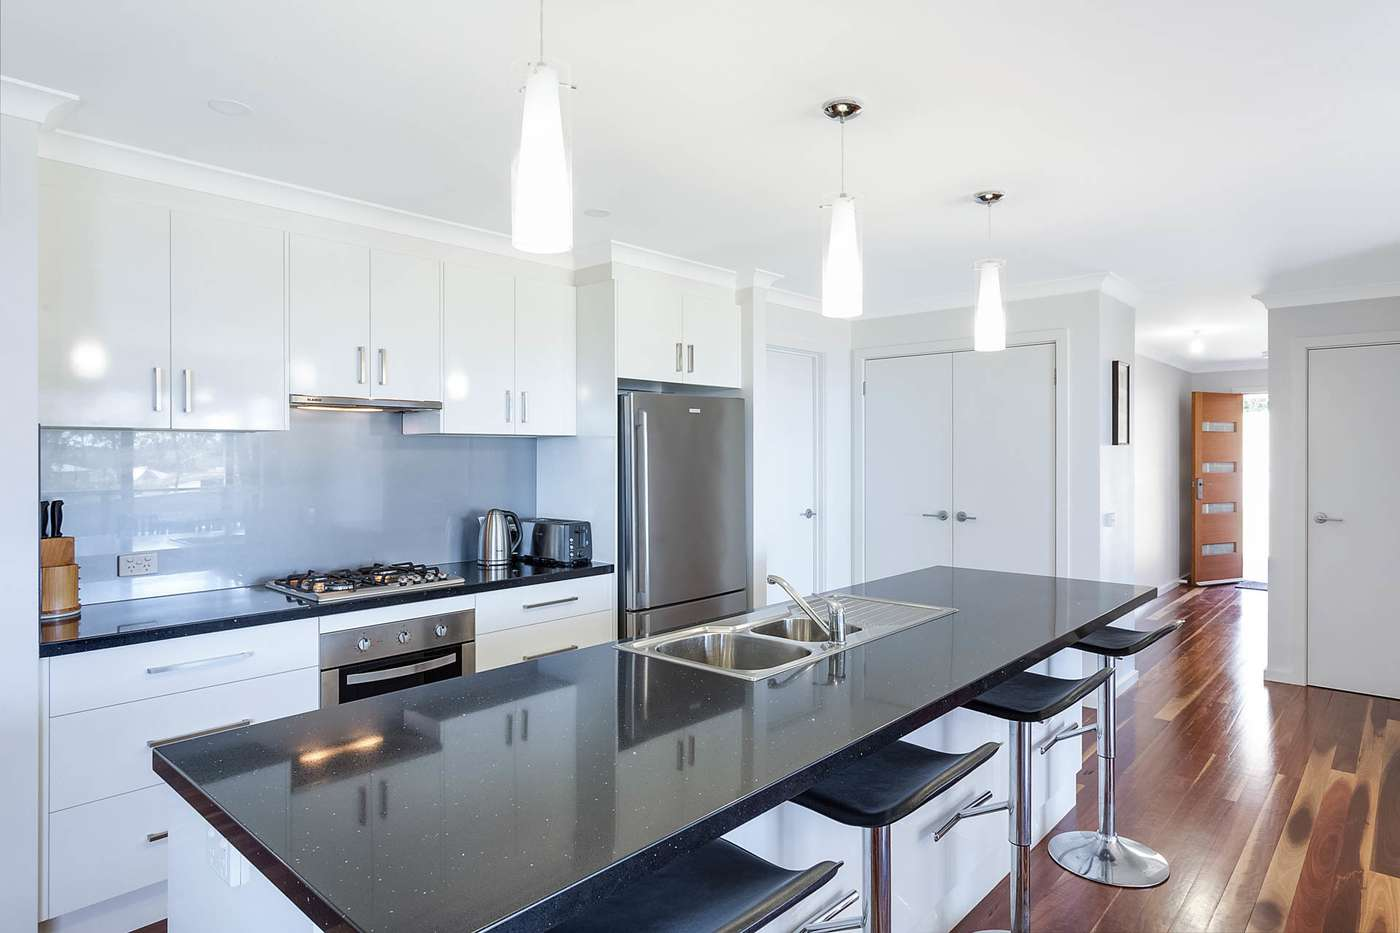 Main view of Homely house listing, 6 Wallaby Way, Tura Beach, NSW 2548